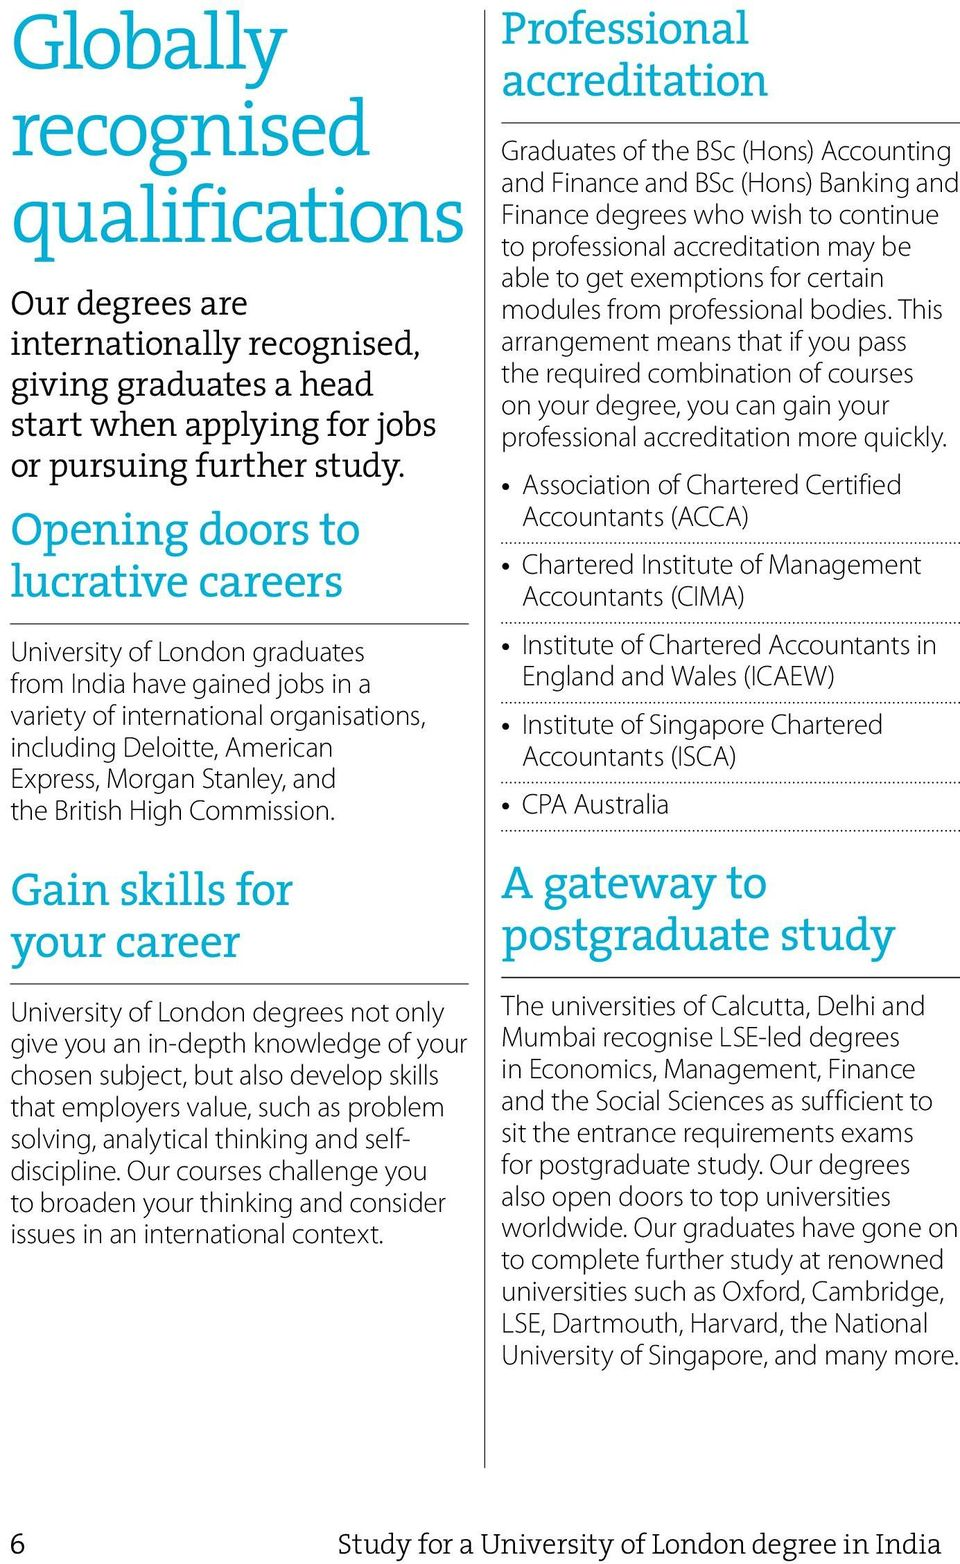 Study in India, graduate from the University of London - PDF